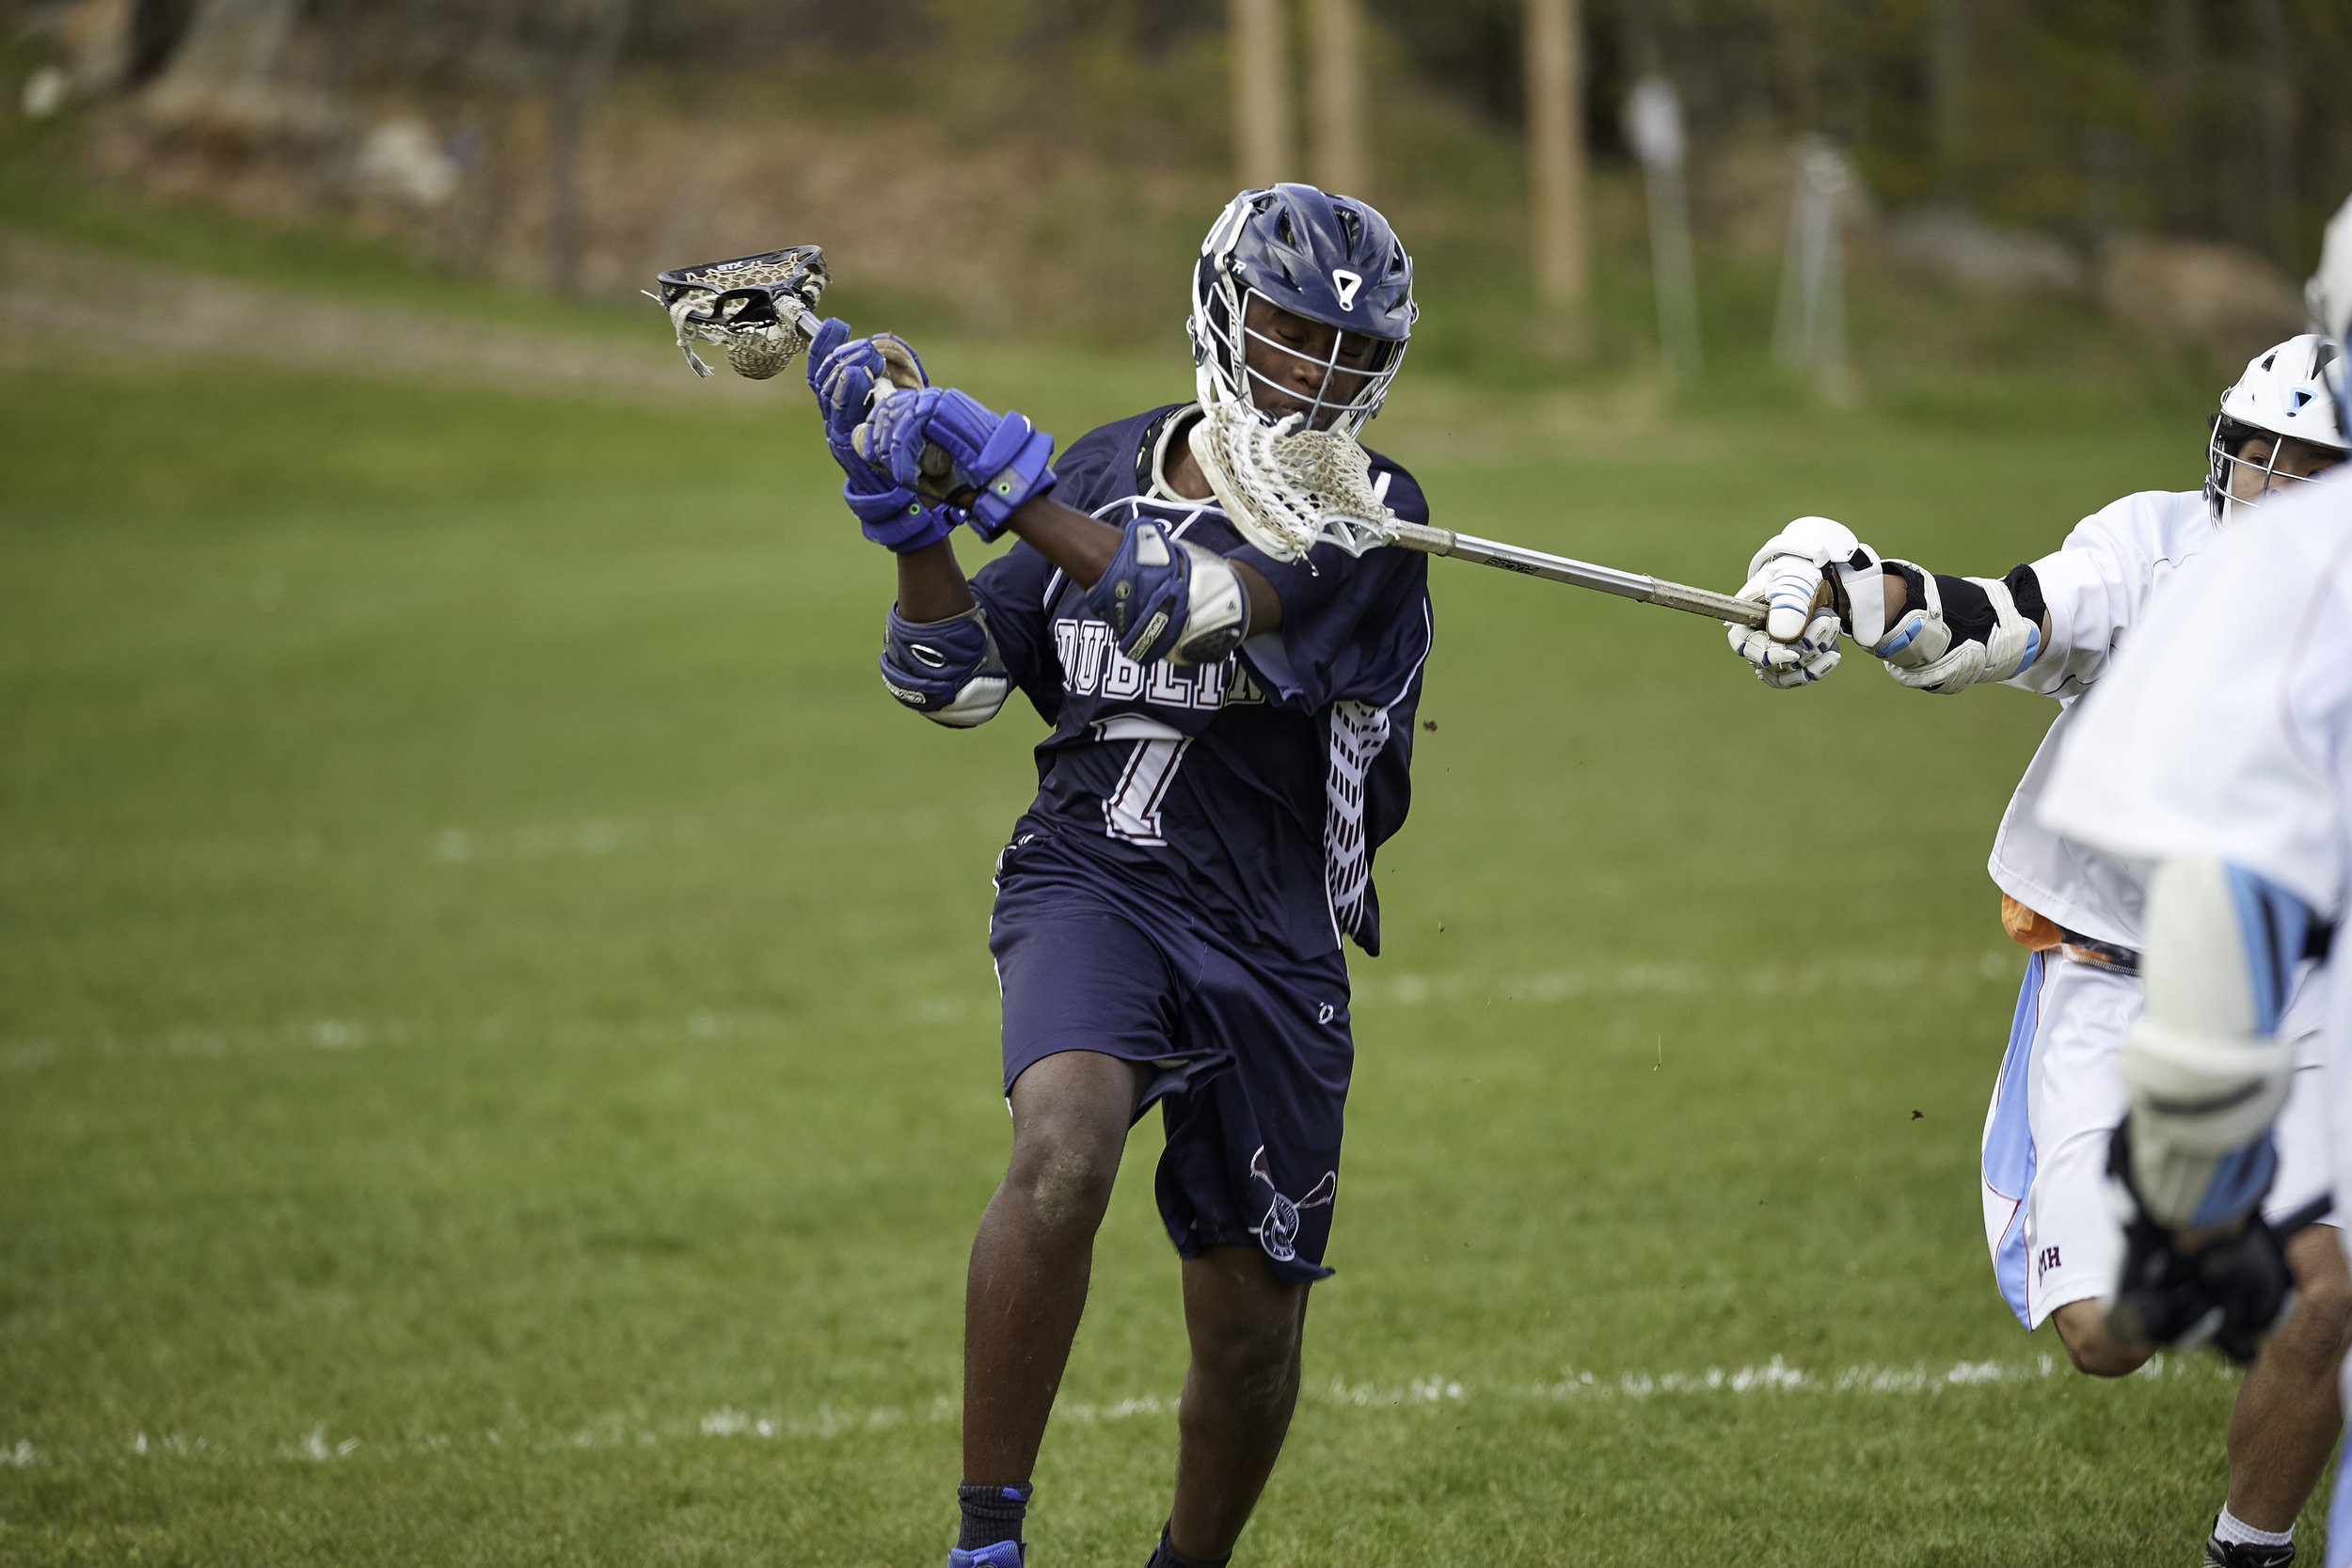 Boys Lax vs Northfield Mount Hermon JV - May 15 2019 - 0036.jpg